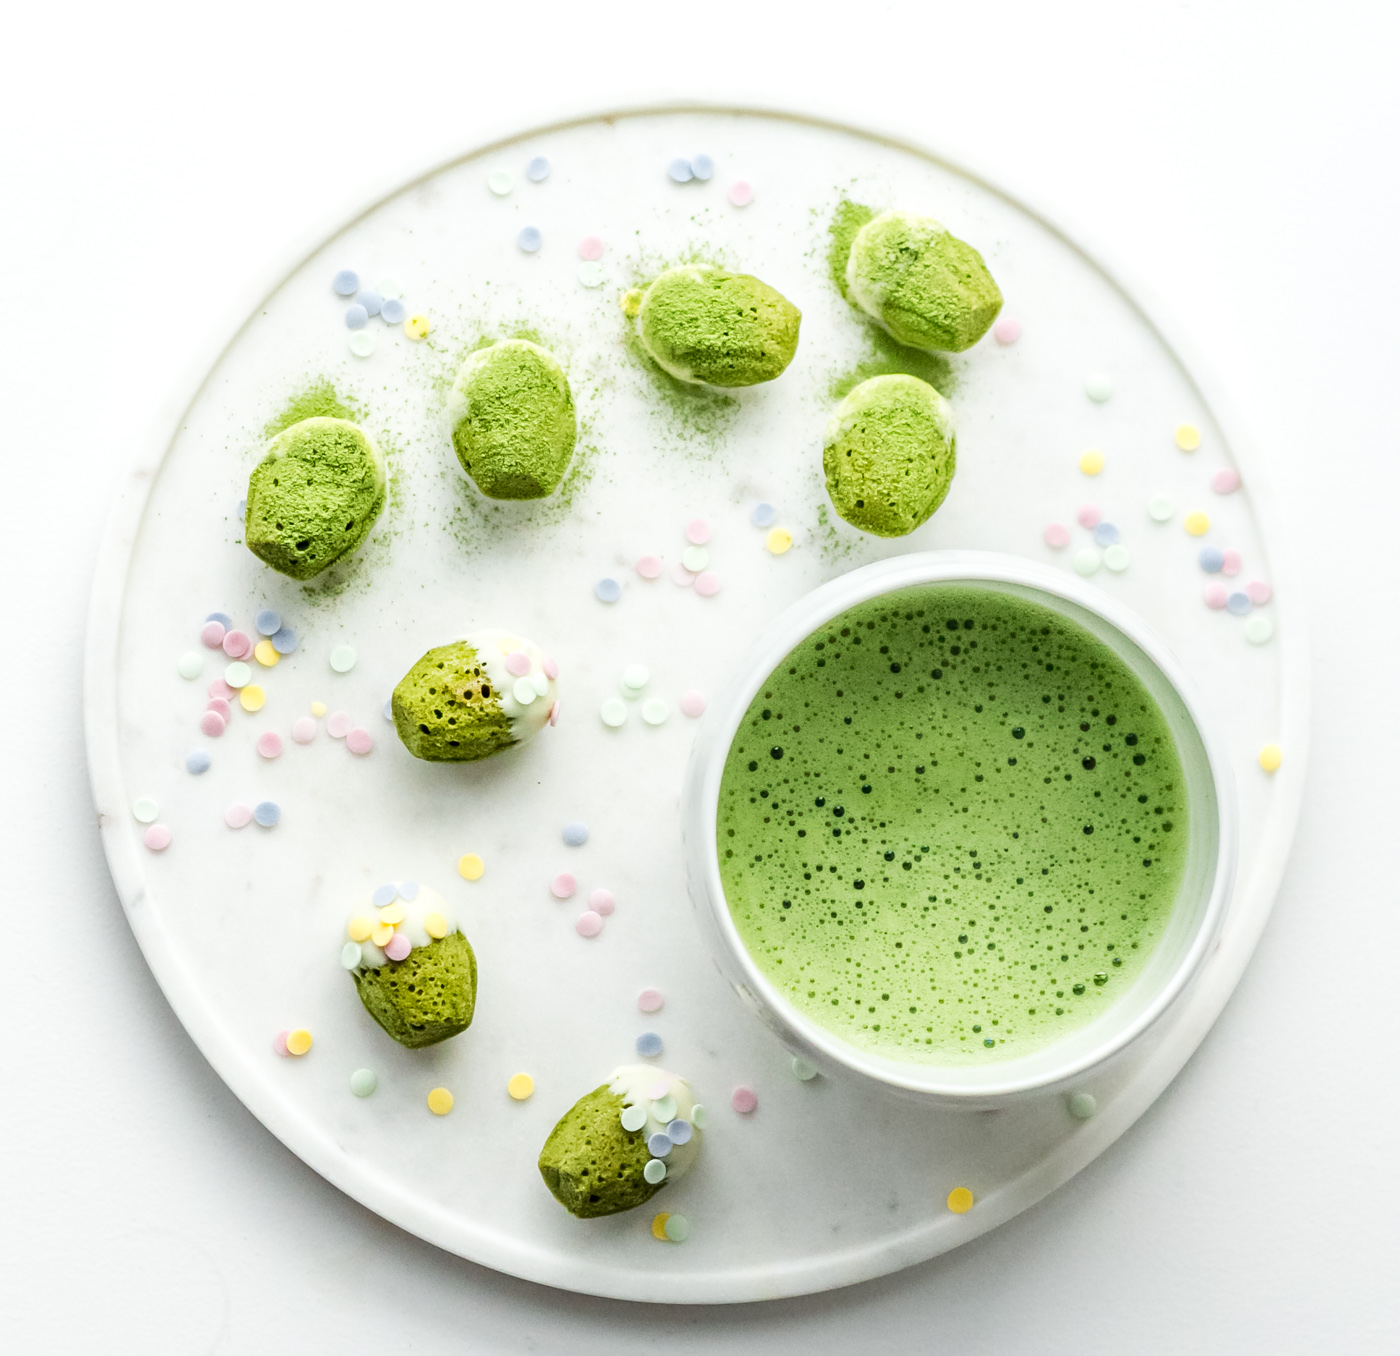 Matcha green tea mini madeleines with white chocolate and a bowl of matcha